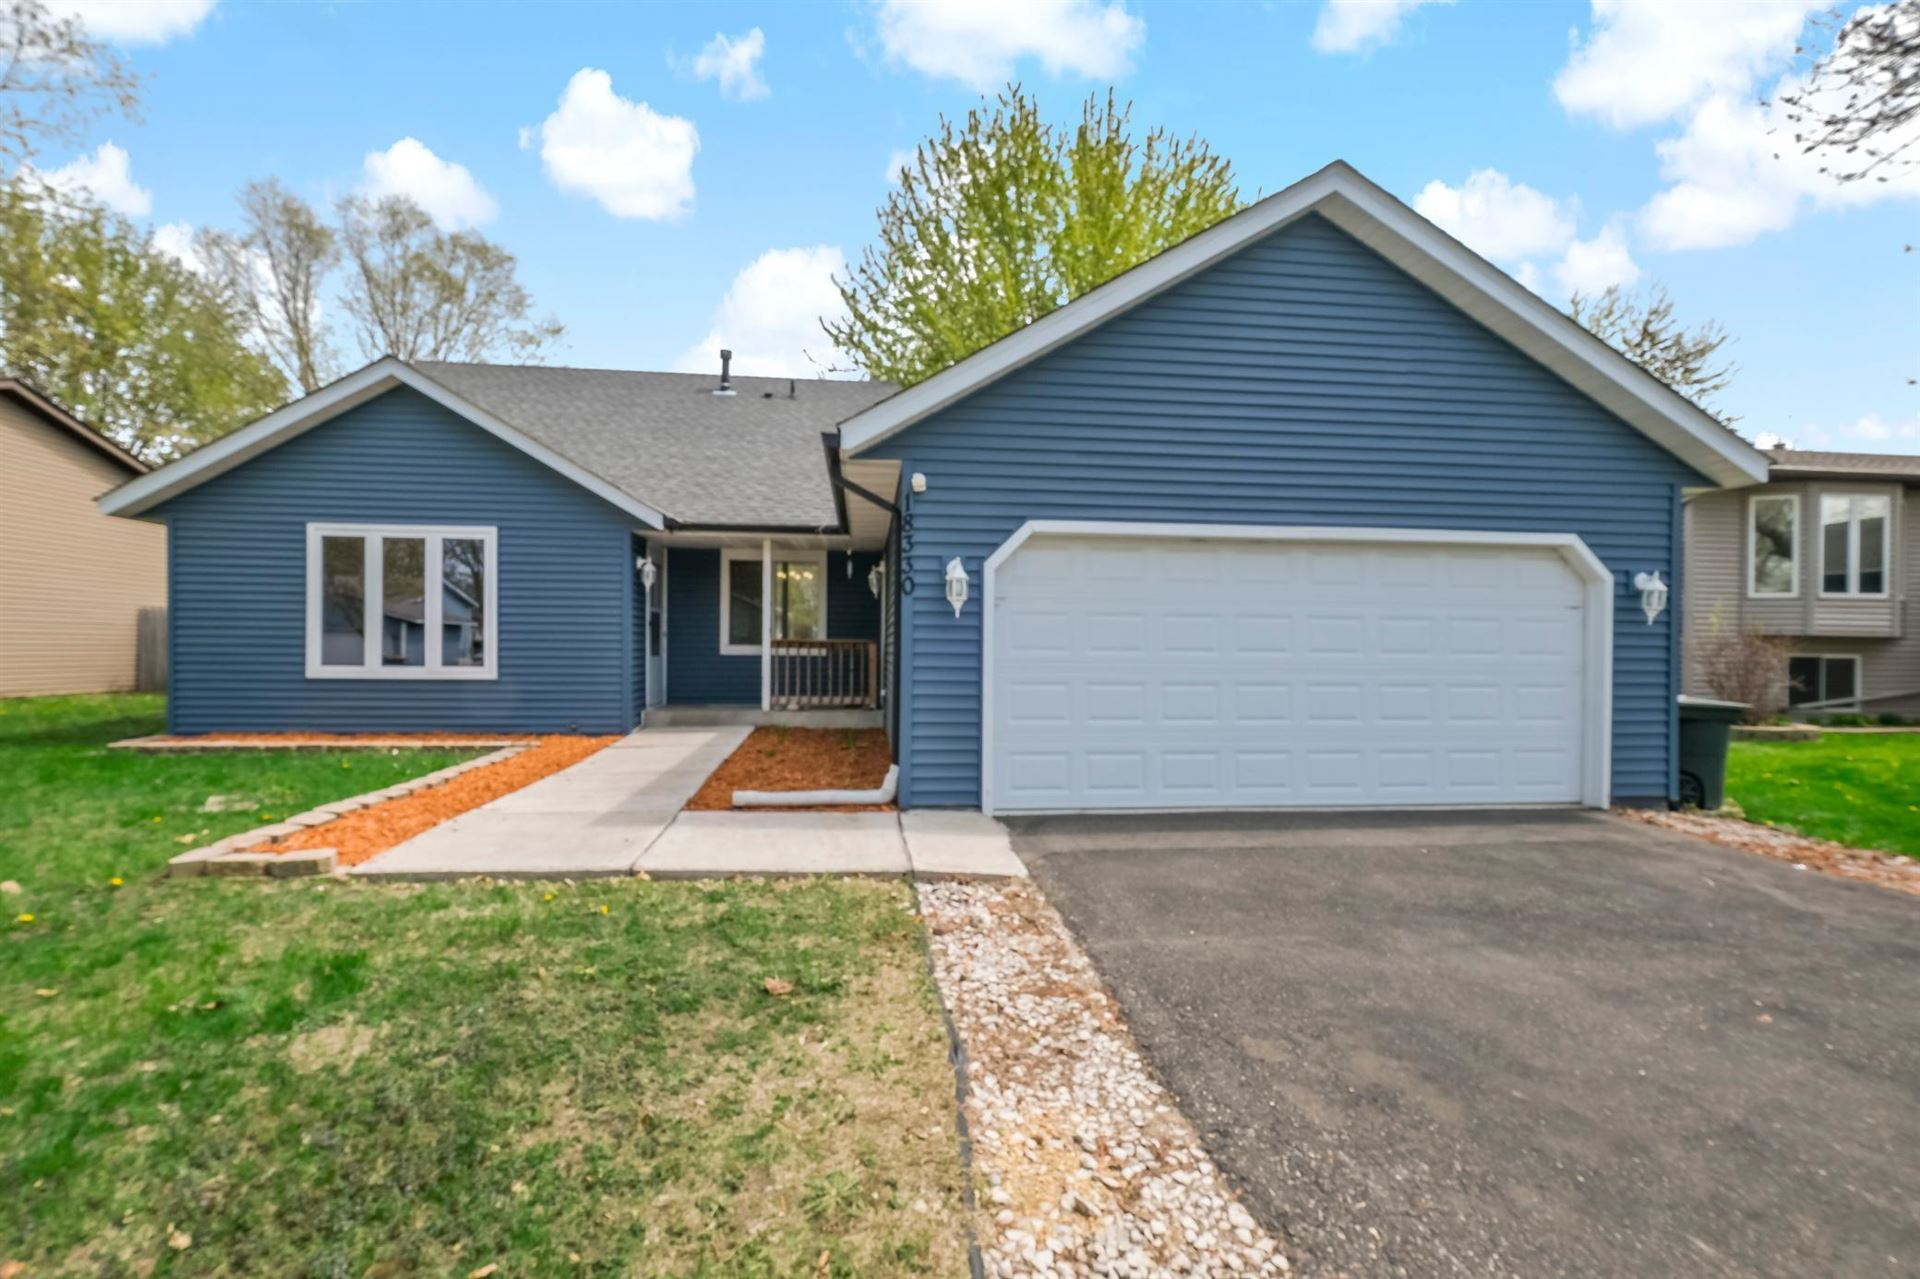 Photo of 18330 Embers Avenue, Farmington, MN 55024 (MLS # 5740838)